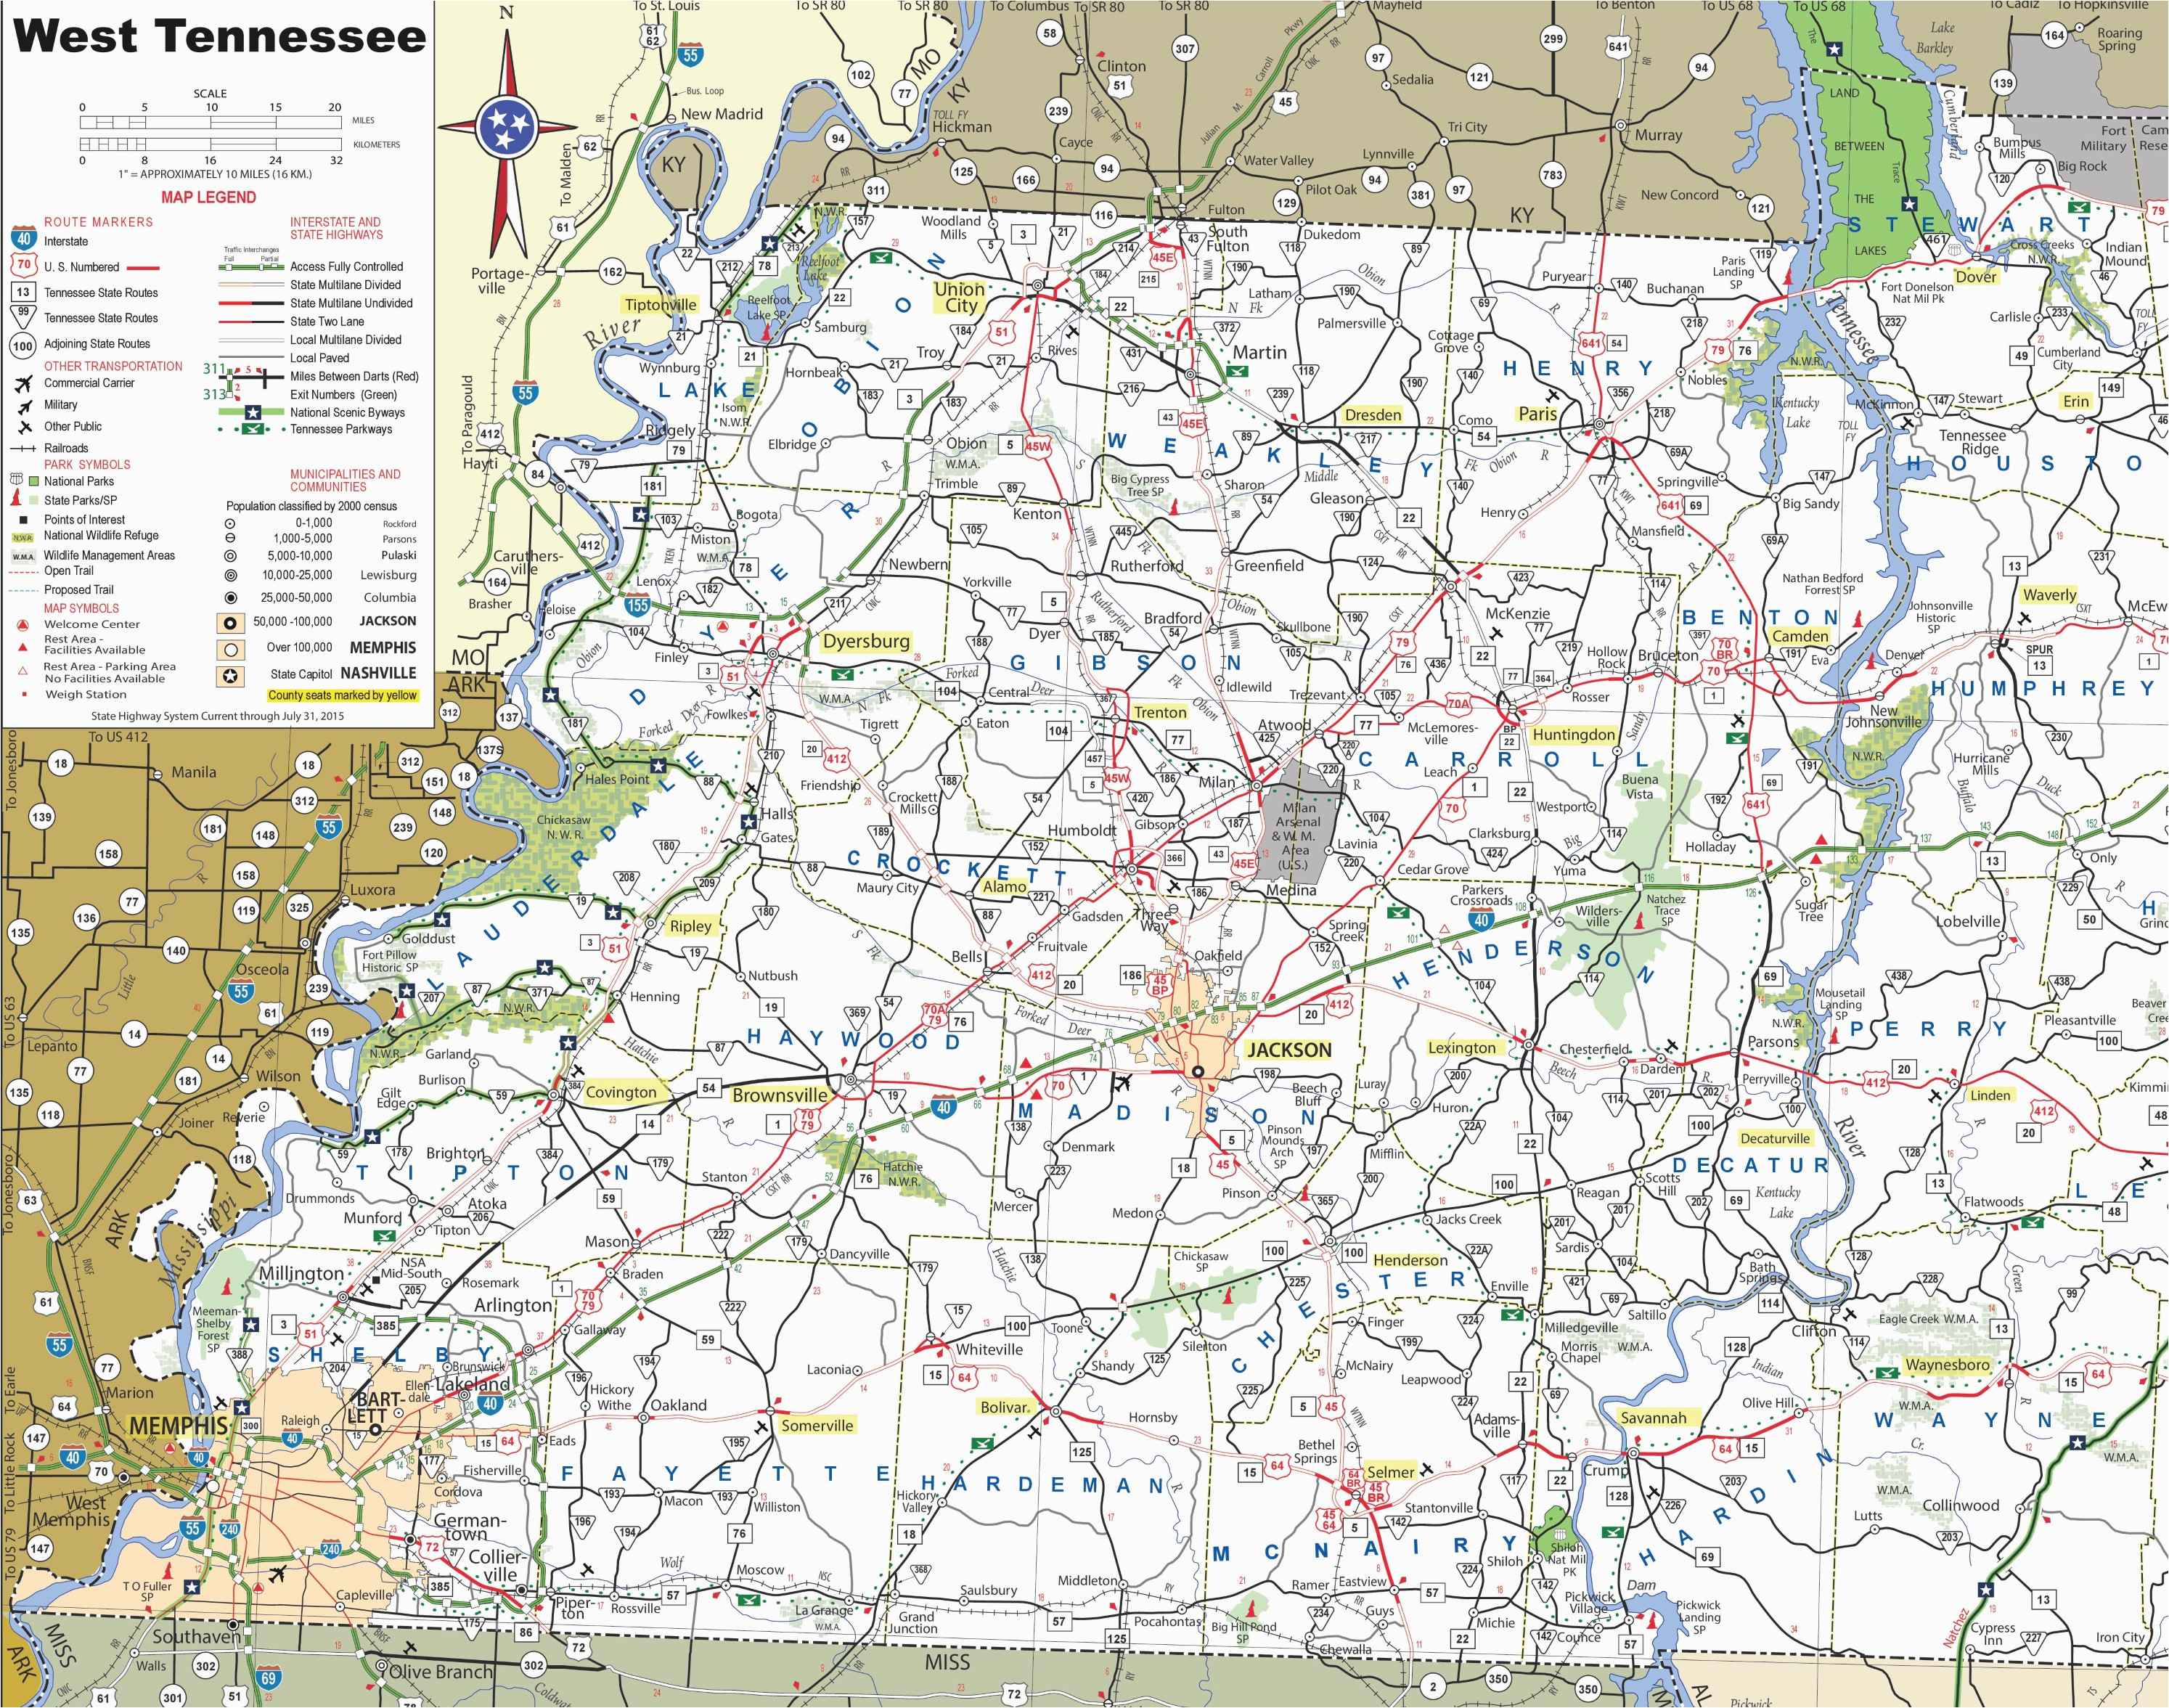 Show Me Map Of Usa.Road Map Of Tennessee And Georgia Show Me A Map Of Tennessee Luxury